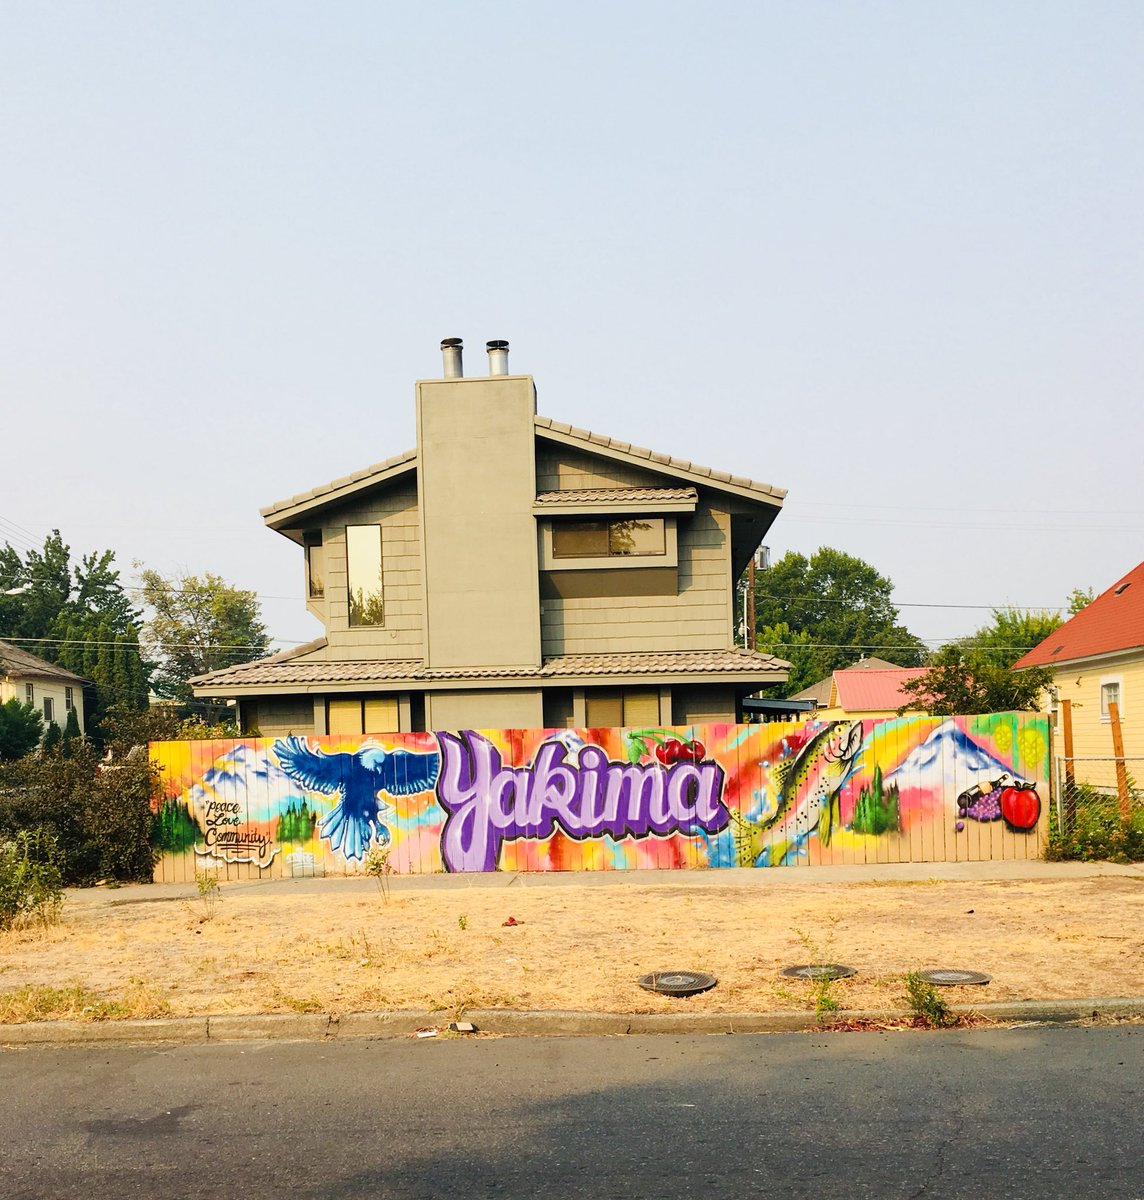 Several @yakimapolice Officers chipped in their own money for a beautiful mural at 6th Street and East Lincoln. Kudos to Yakima artist Trevor Braden for his great artwork. Great job! #yakimaart #streetart <br>http://pic.twitter.com/tWP0S4euZy